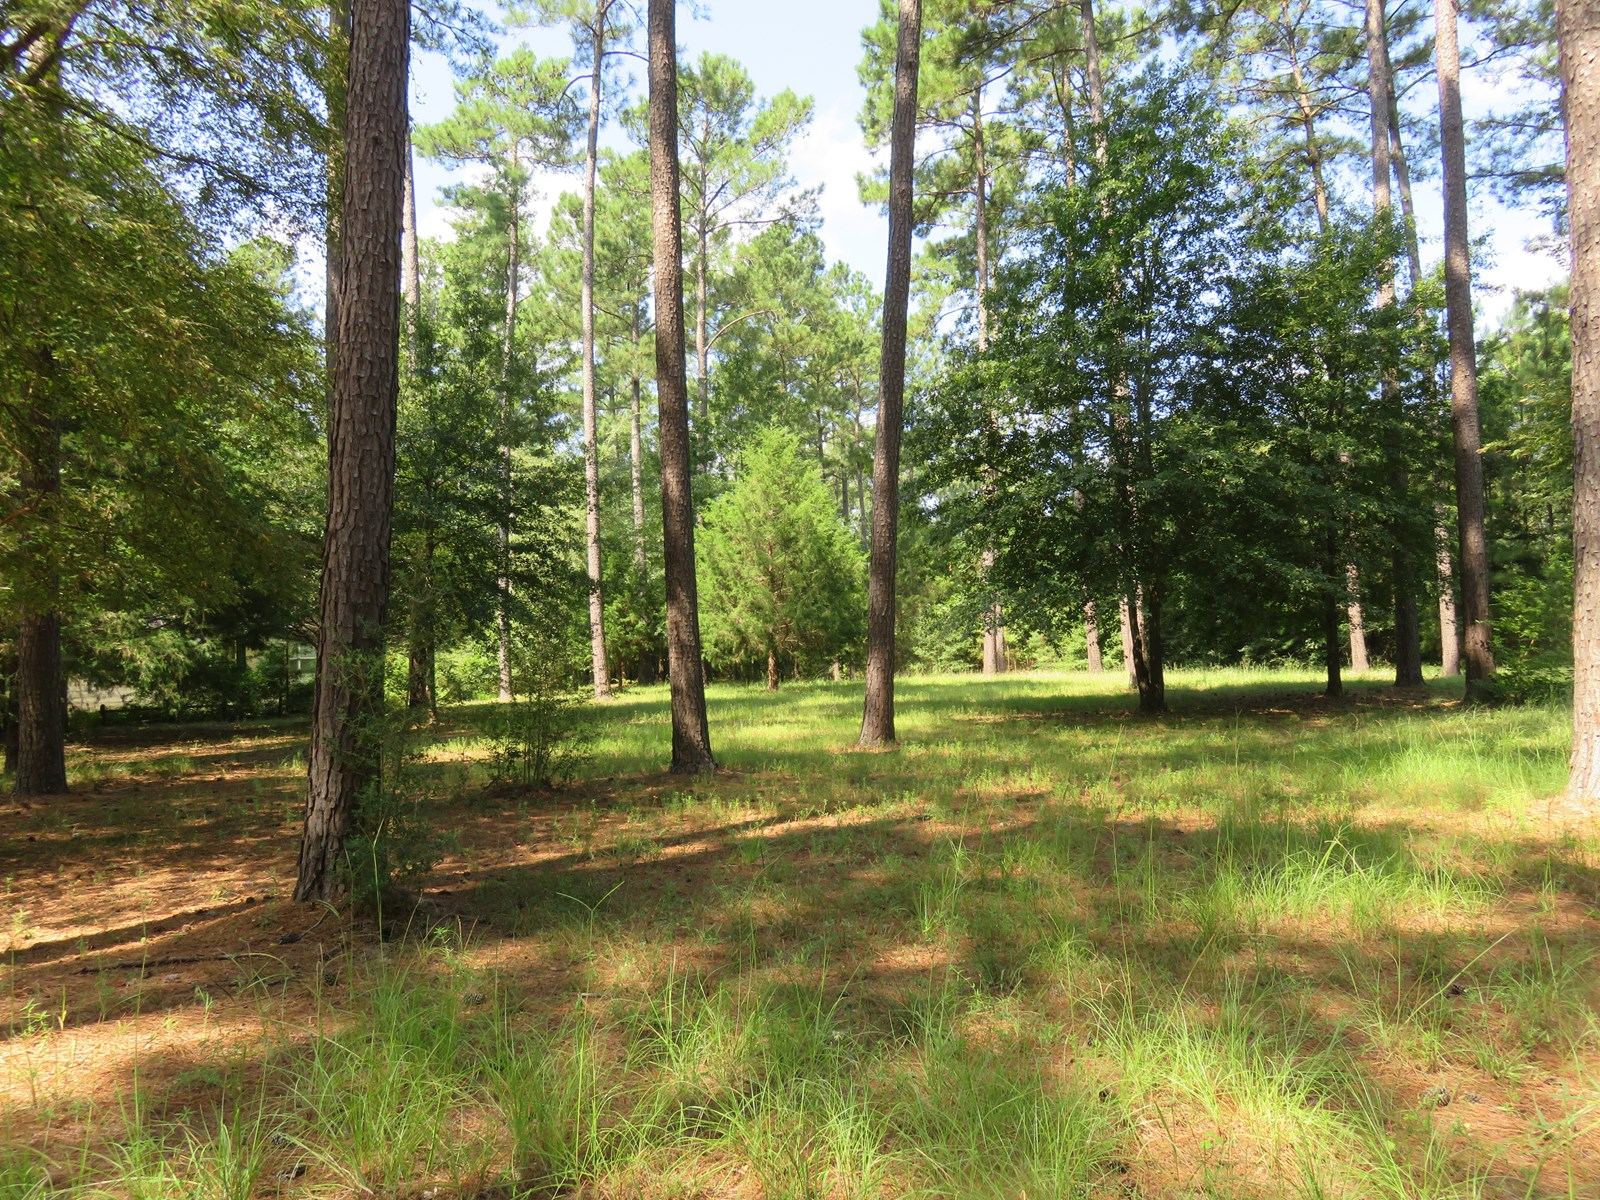 30 + Acres in Anderson County With Hunting Cabin For Sale